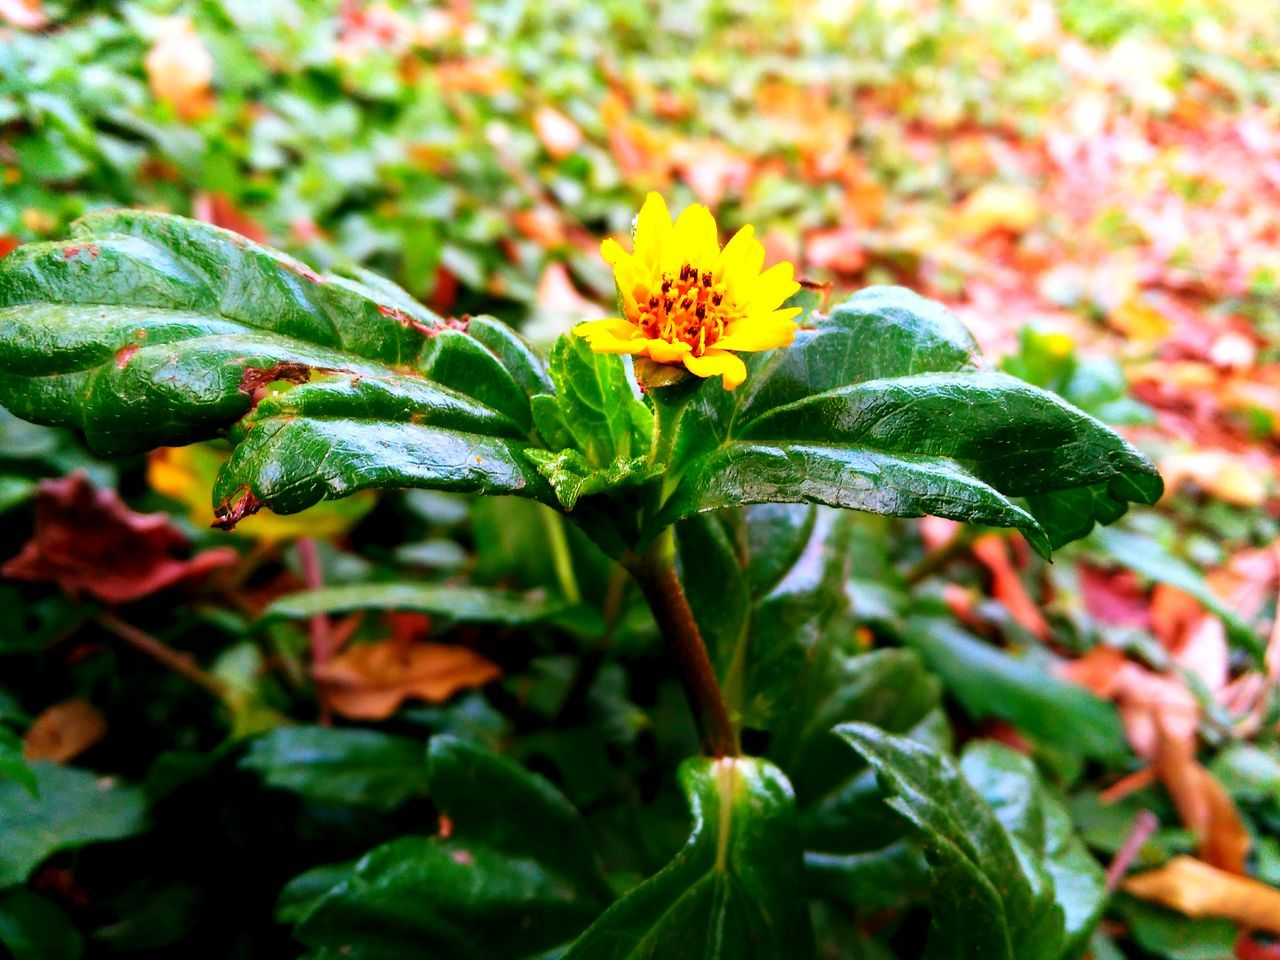 leaf, growth, plant, flower, green color, nature, beauty in nature, outdoors, fragility, no people, petal, freshness, flower head, day, blooming, close-up